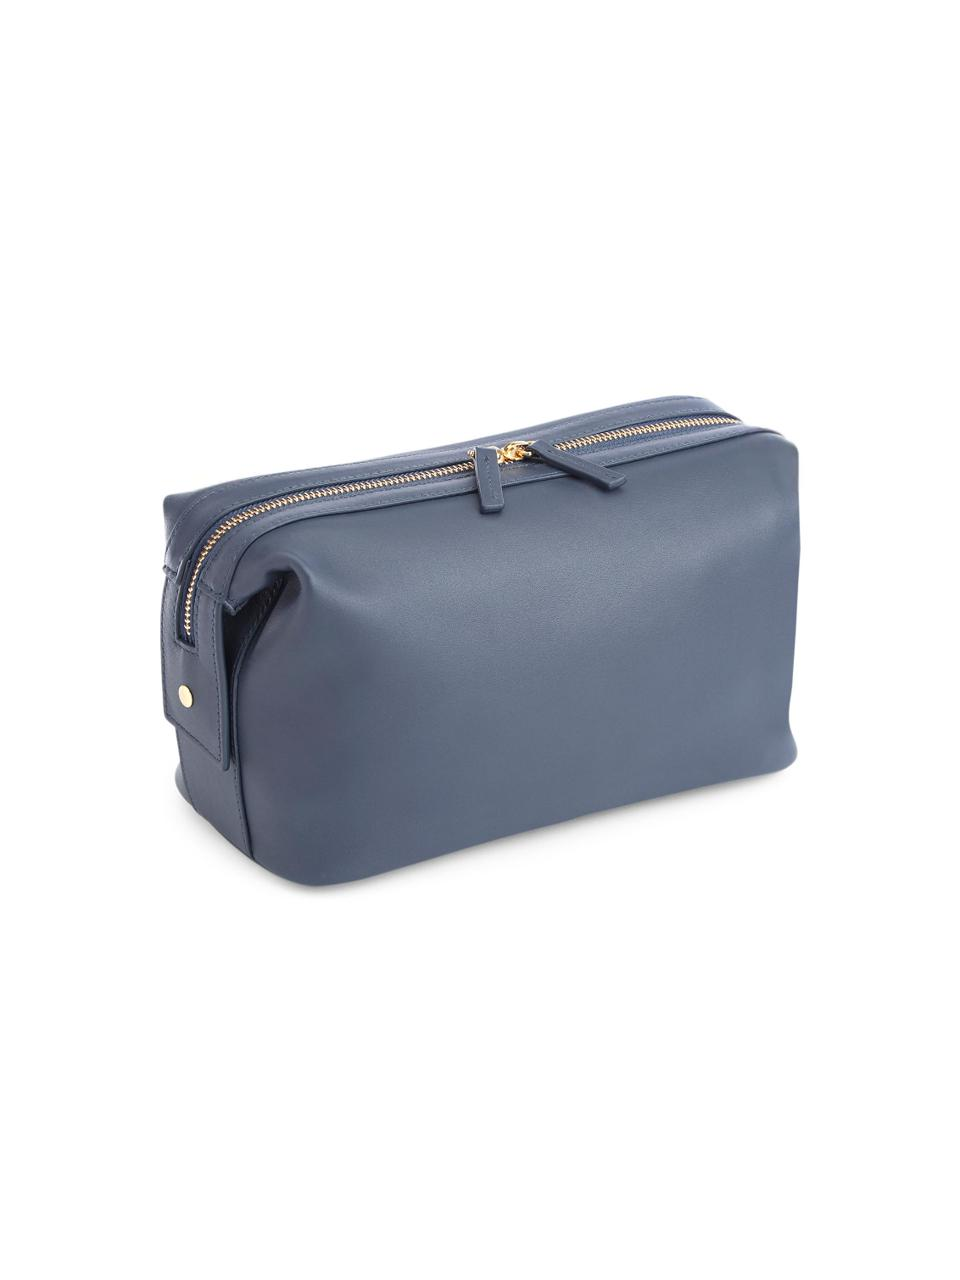 Grey Canvas HEY GOOD LOOKING Travel Washbag for Gym Travel or Gift None